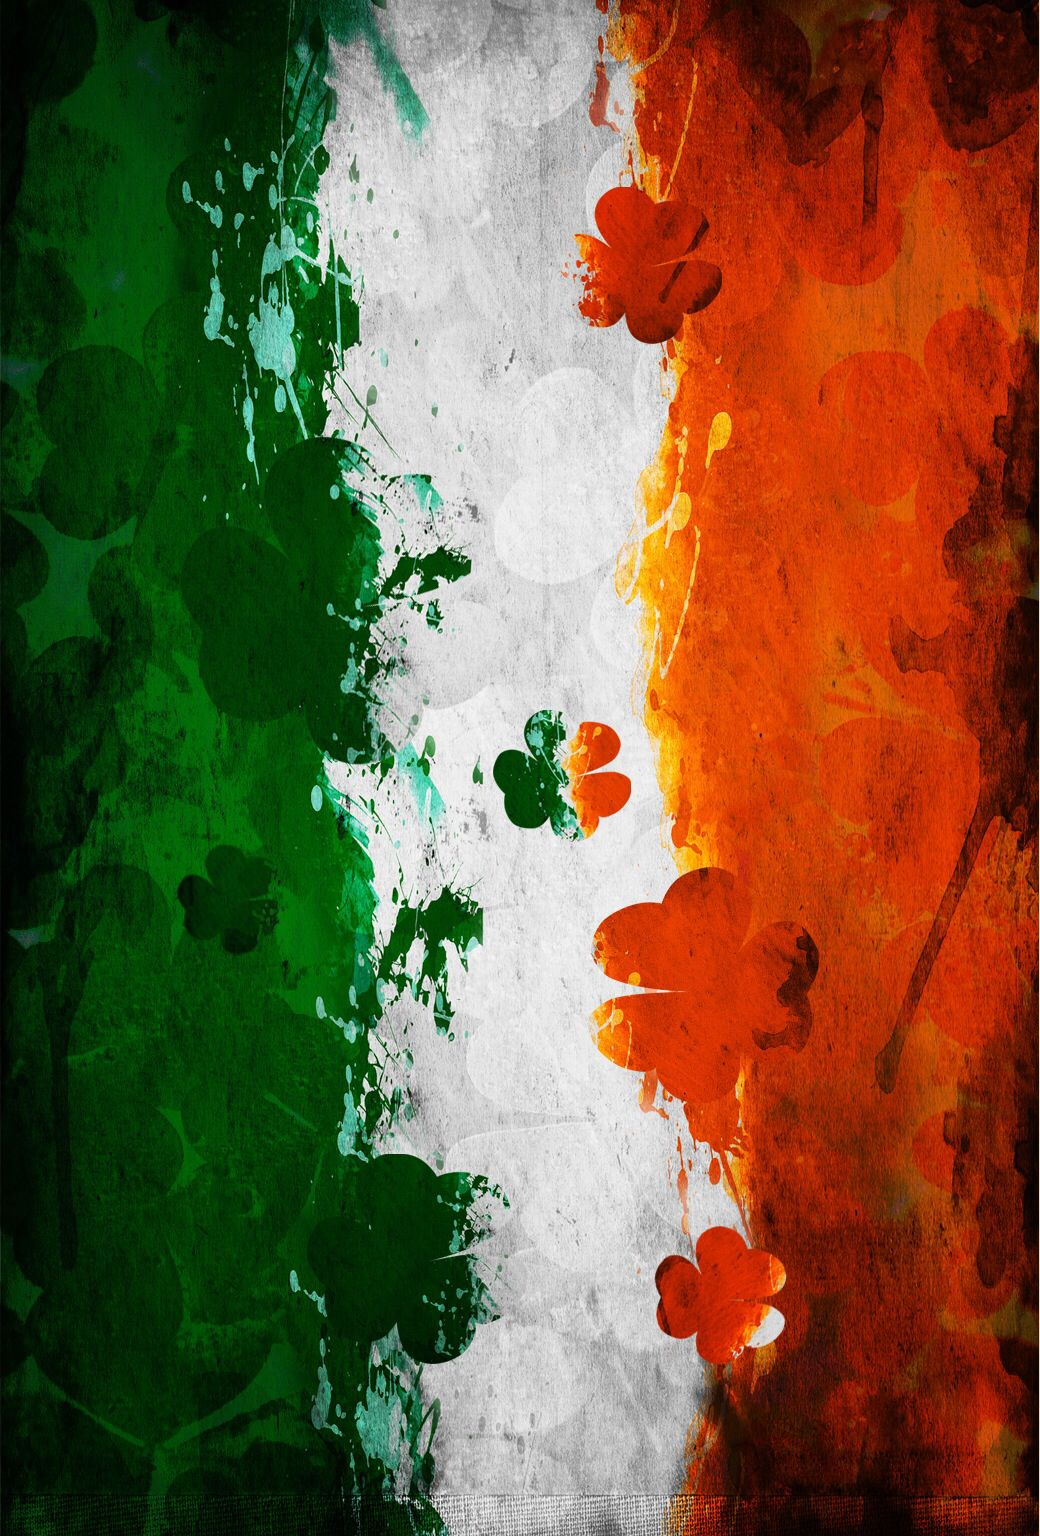 Pin By Elizabeth Aguilar On Backgrounds In 2020 St Patricks Day